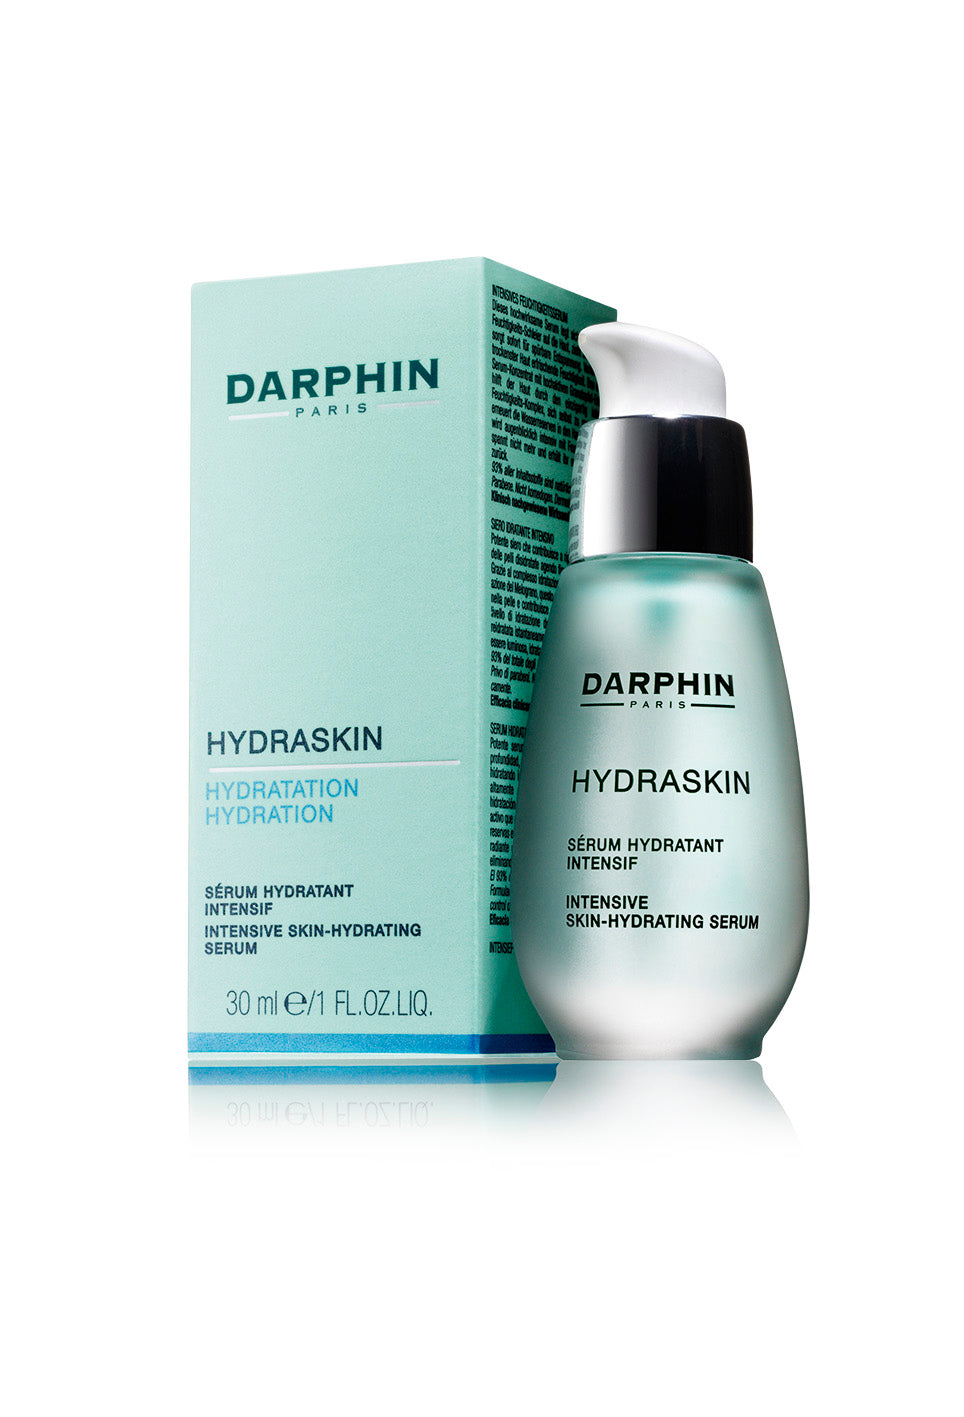 Hydraskin skin-hydrating serum 30ml